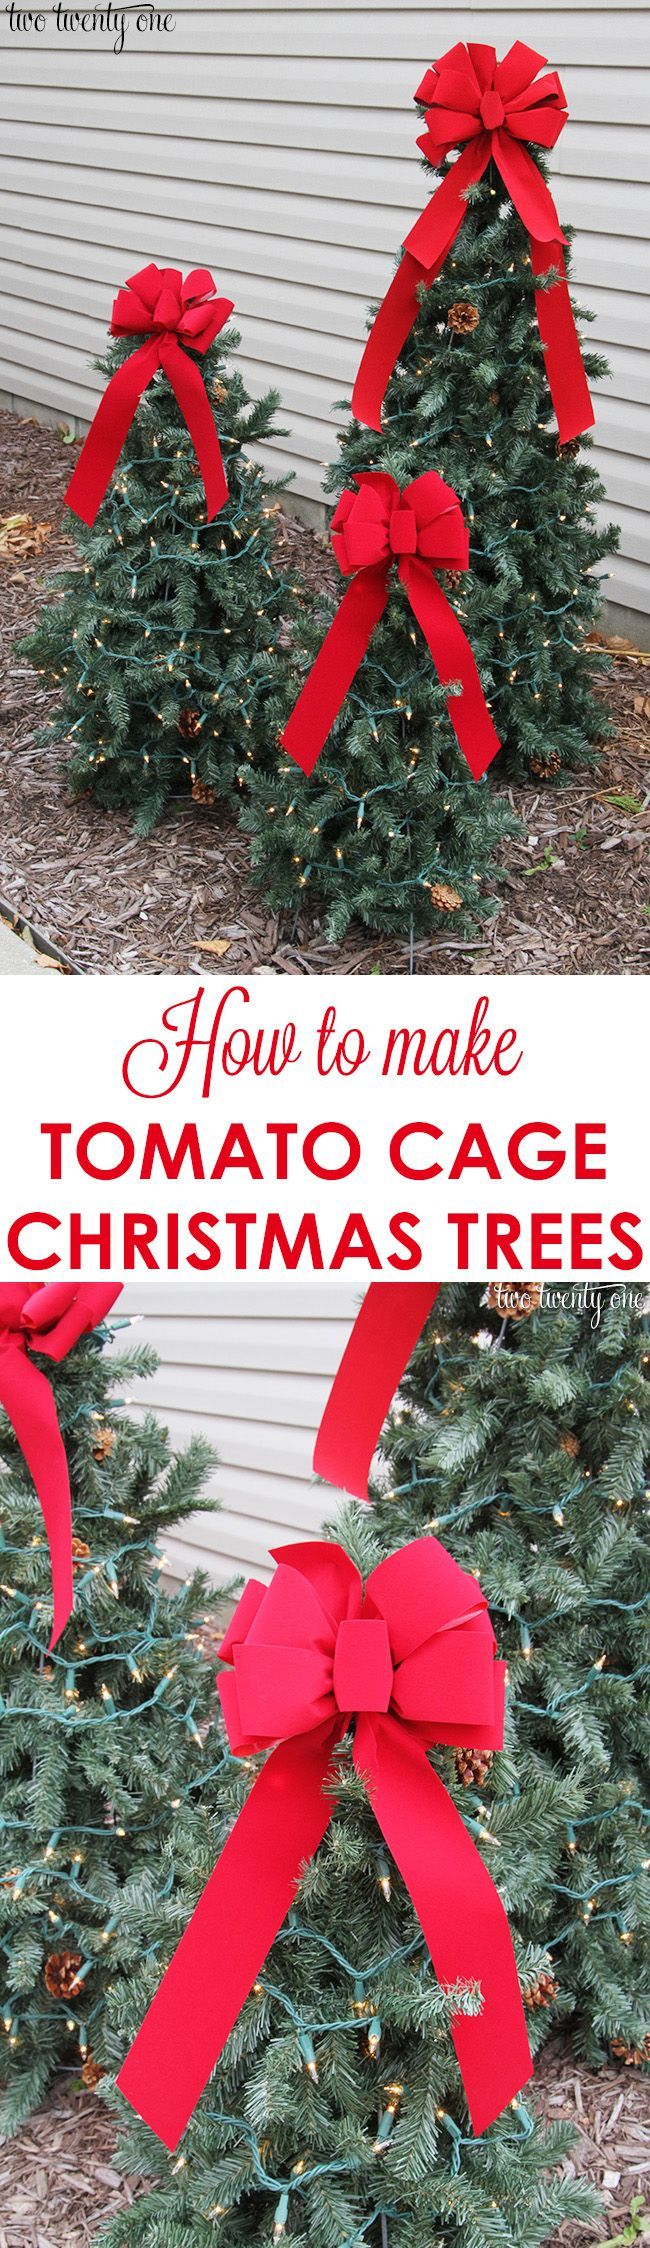 Outdoor christmas tree decorations - How To Make Tomato Cage Christmas Trees Plus How To Make Three Different Sizes